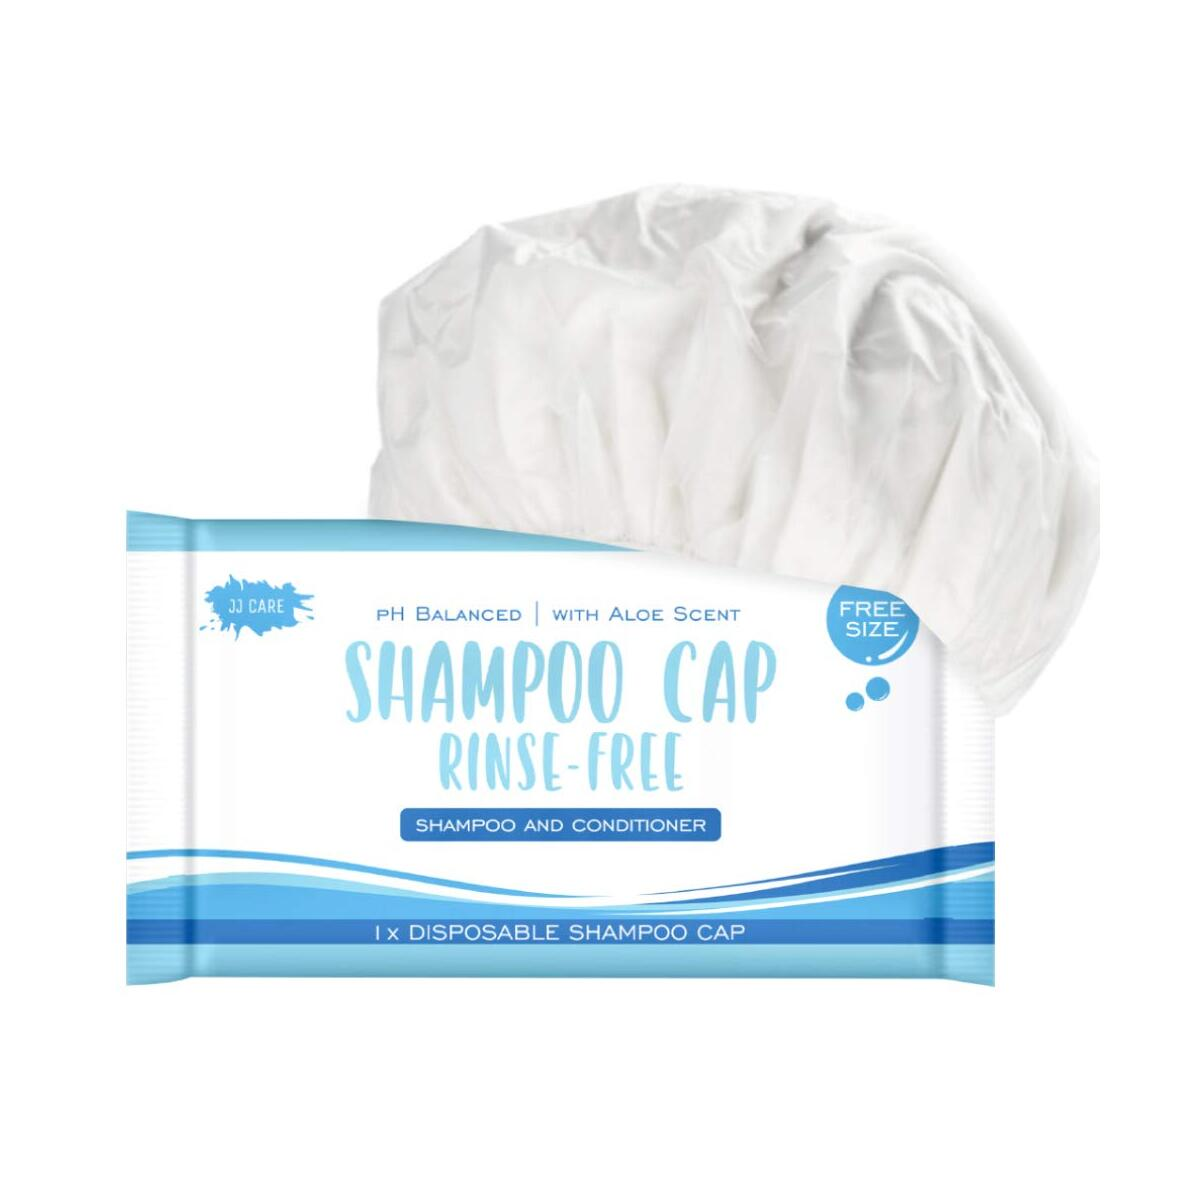 [Pack of 32] Rinse-Free Shampoo Cap, Rinse-Free Shampoo and Conditioner Medical Shampoo Cap, Dry Shampoo Cap, No Water or Rinse-less, Microwaveable Shampoo Cap, For Disabled, Elderly, Camping, Aloe Scented